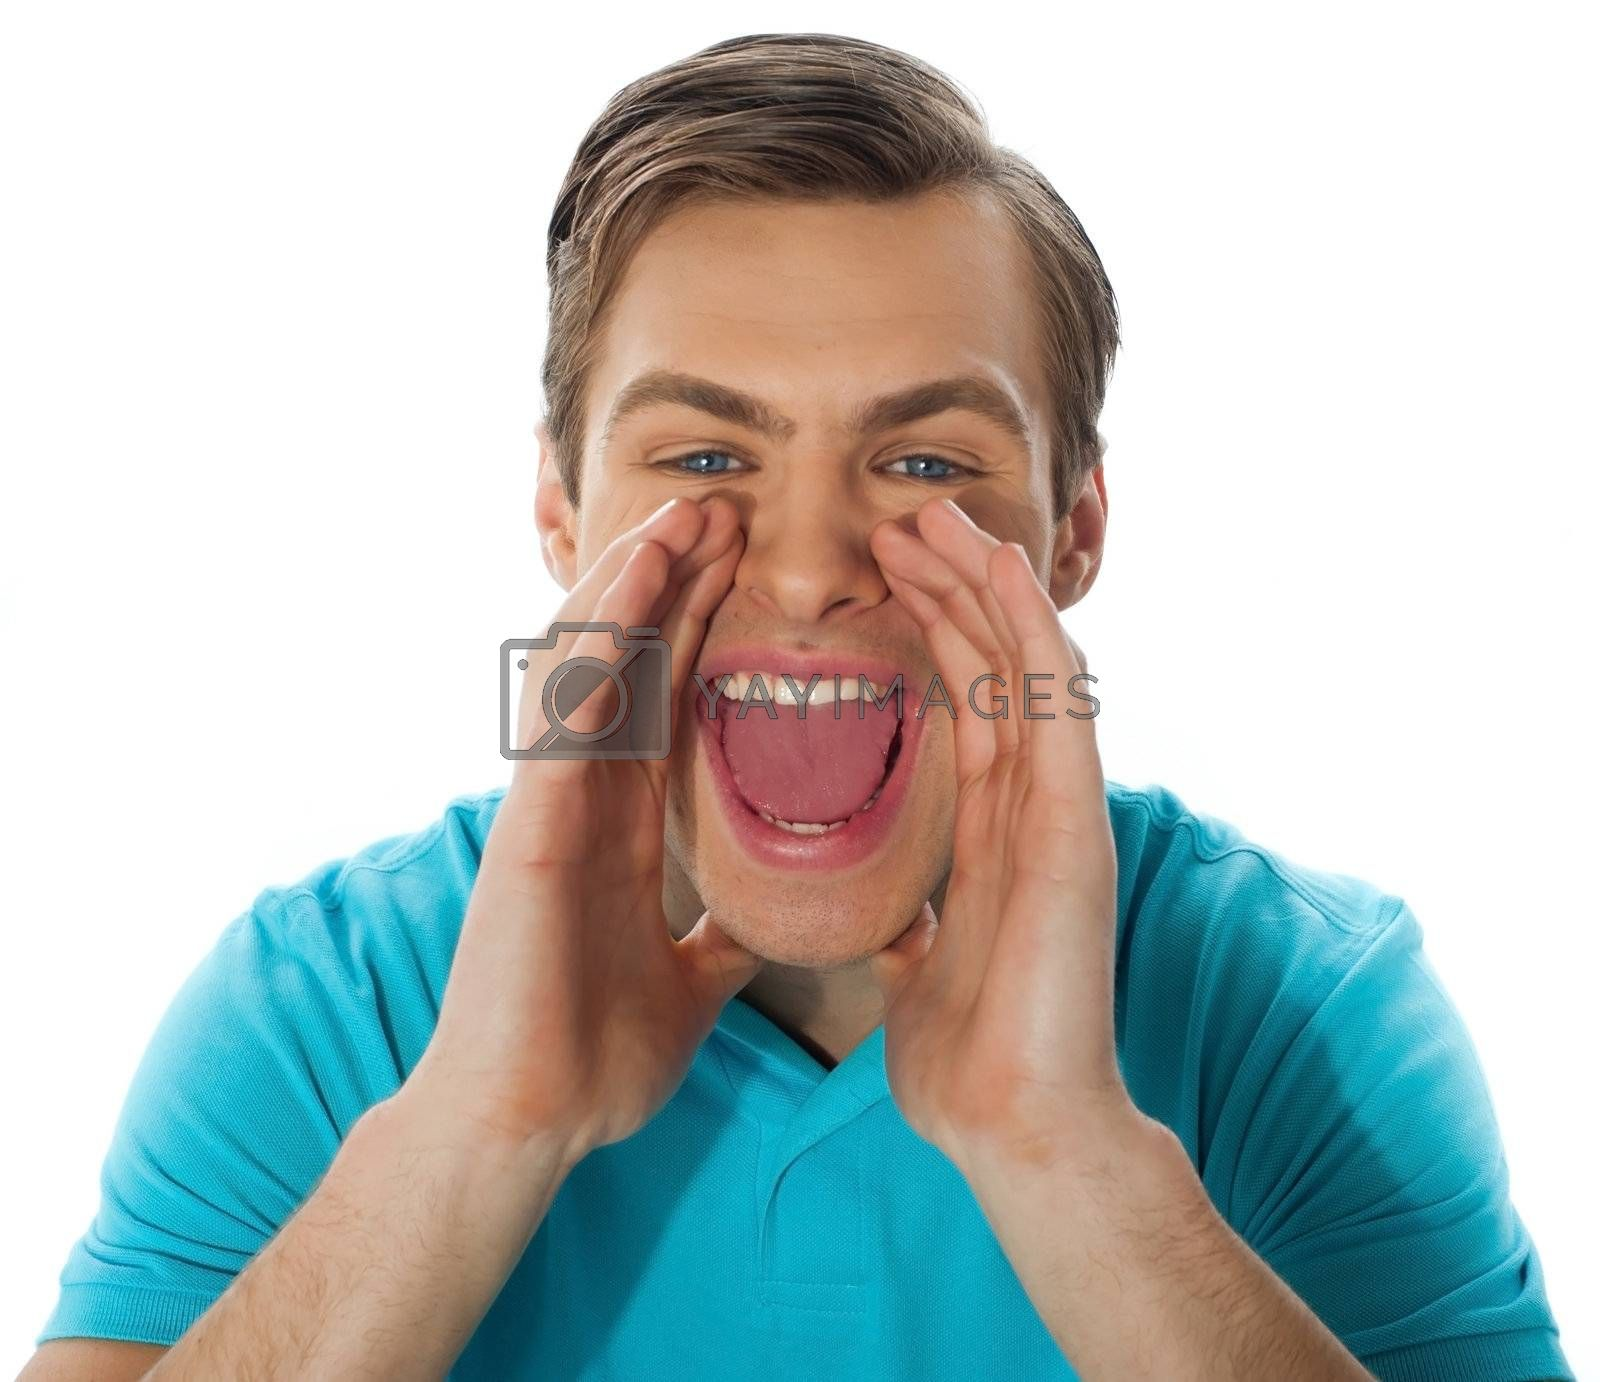 Young guy shouting loud against white background, closeup